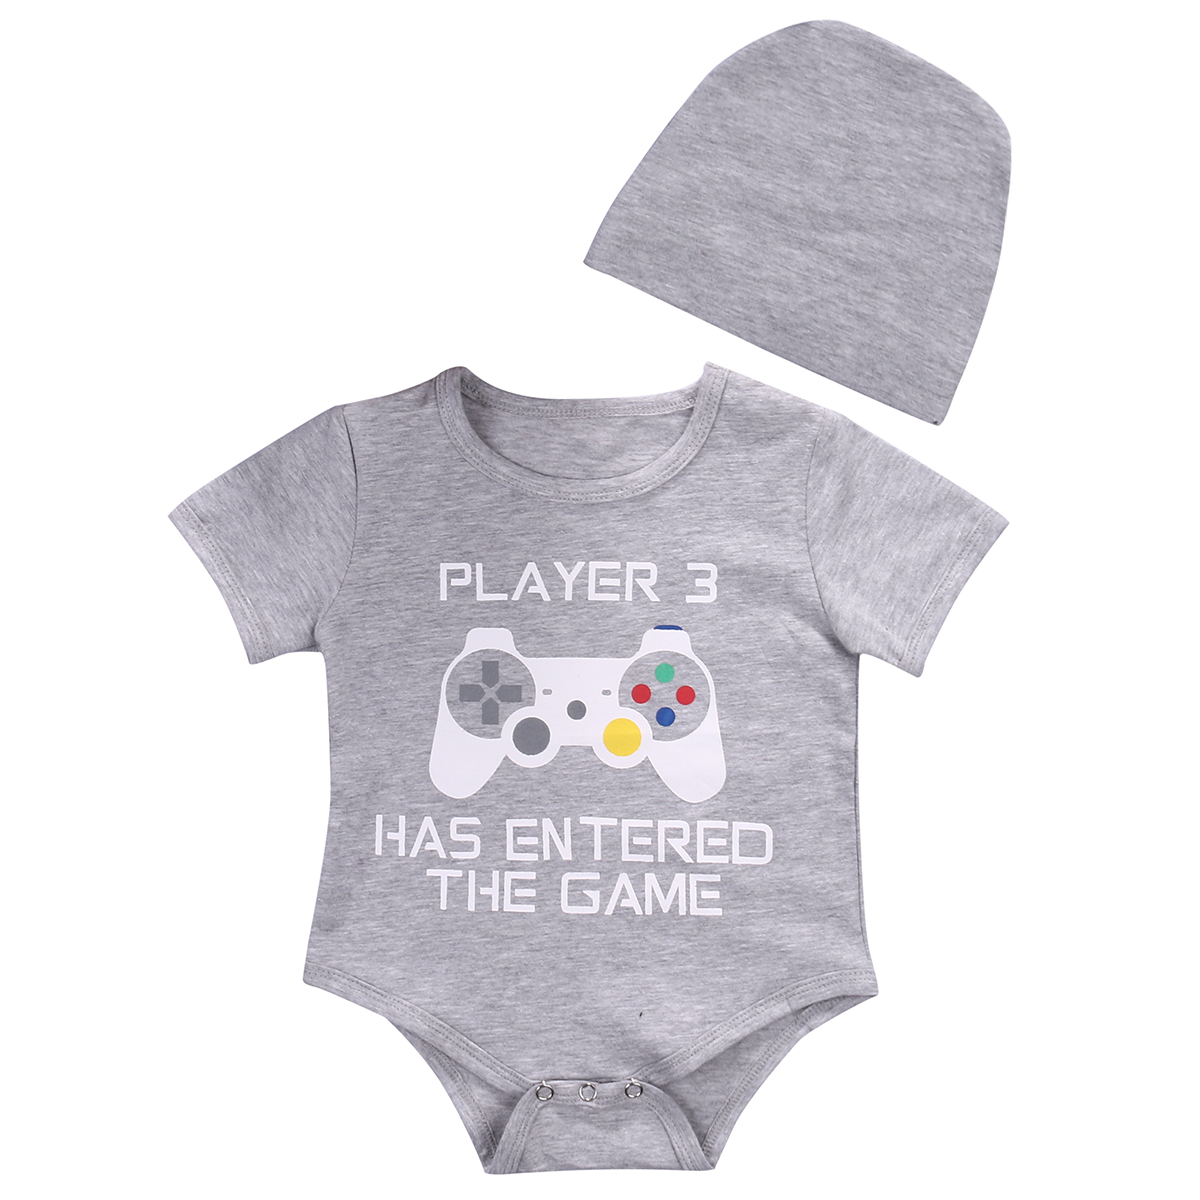 Us Army Ranger Tab Newborn Infant Toddler Baby Girls Boys Bodysuit Short Sleeve 0-24 MonthsBlack